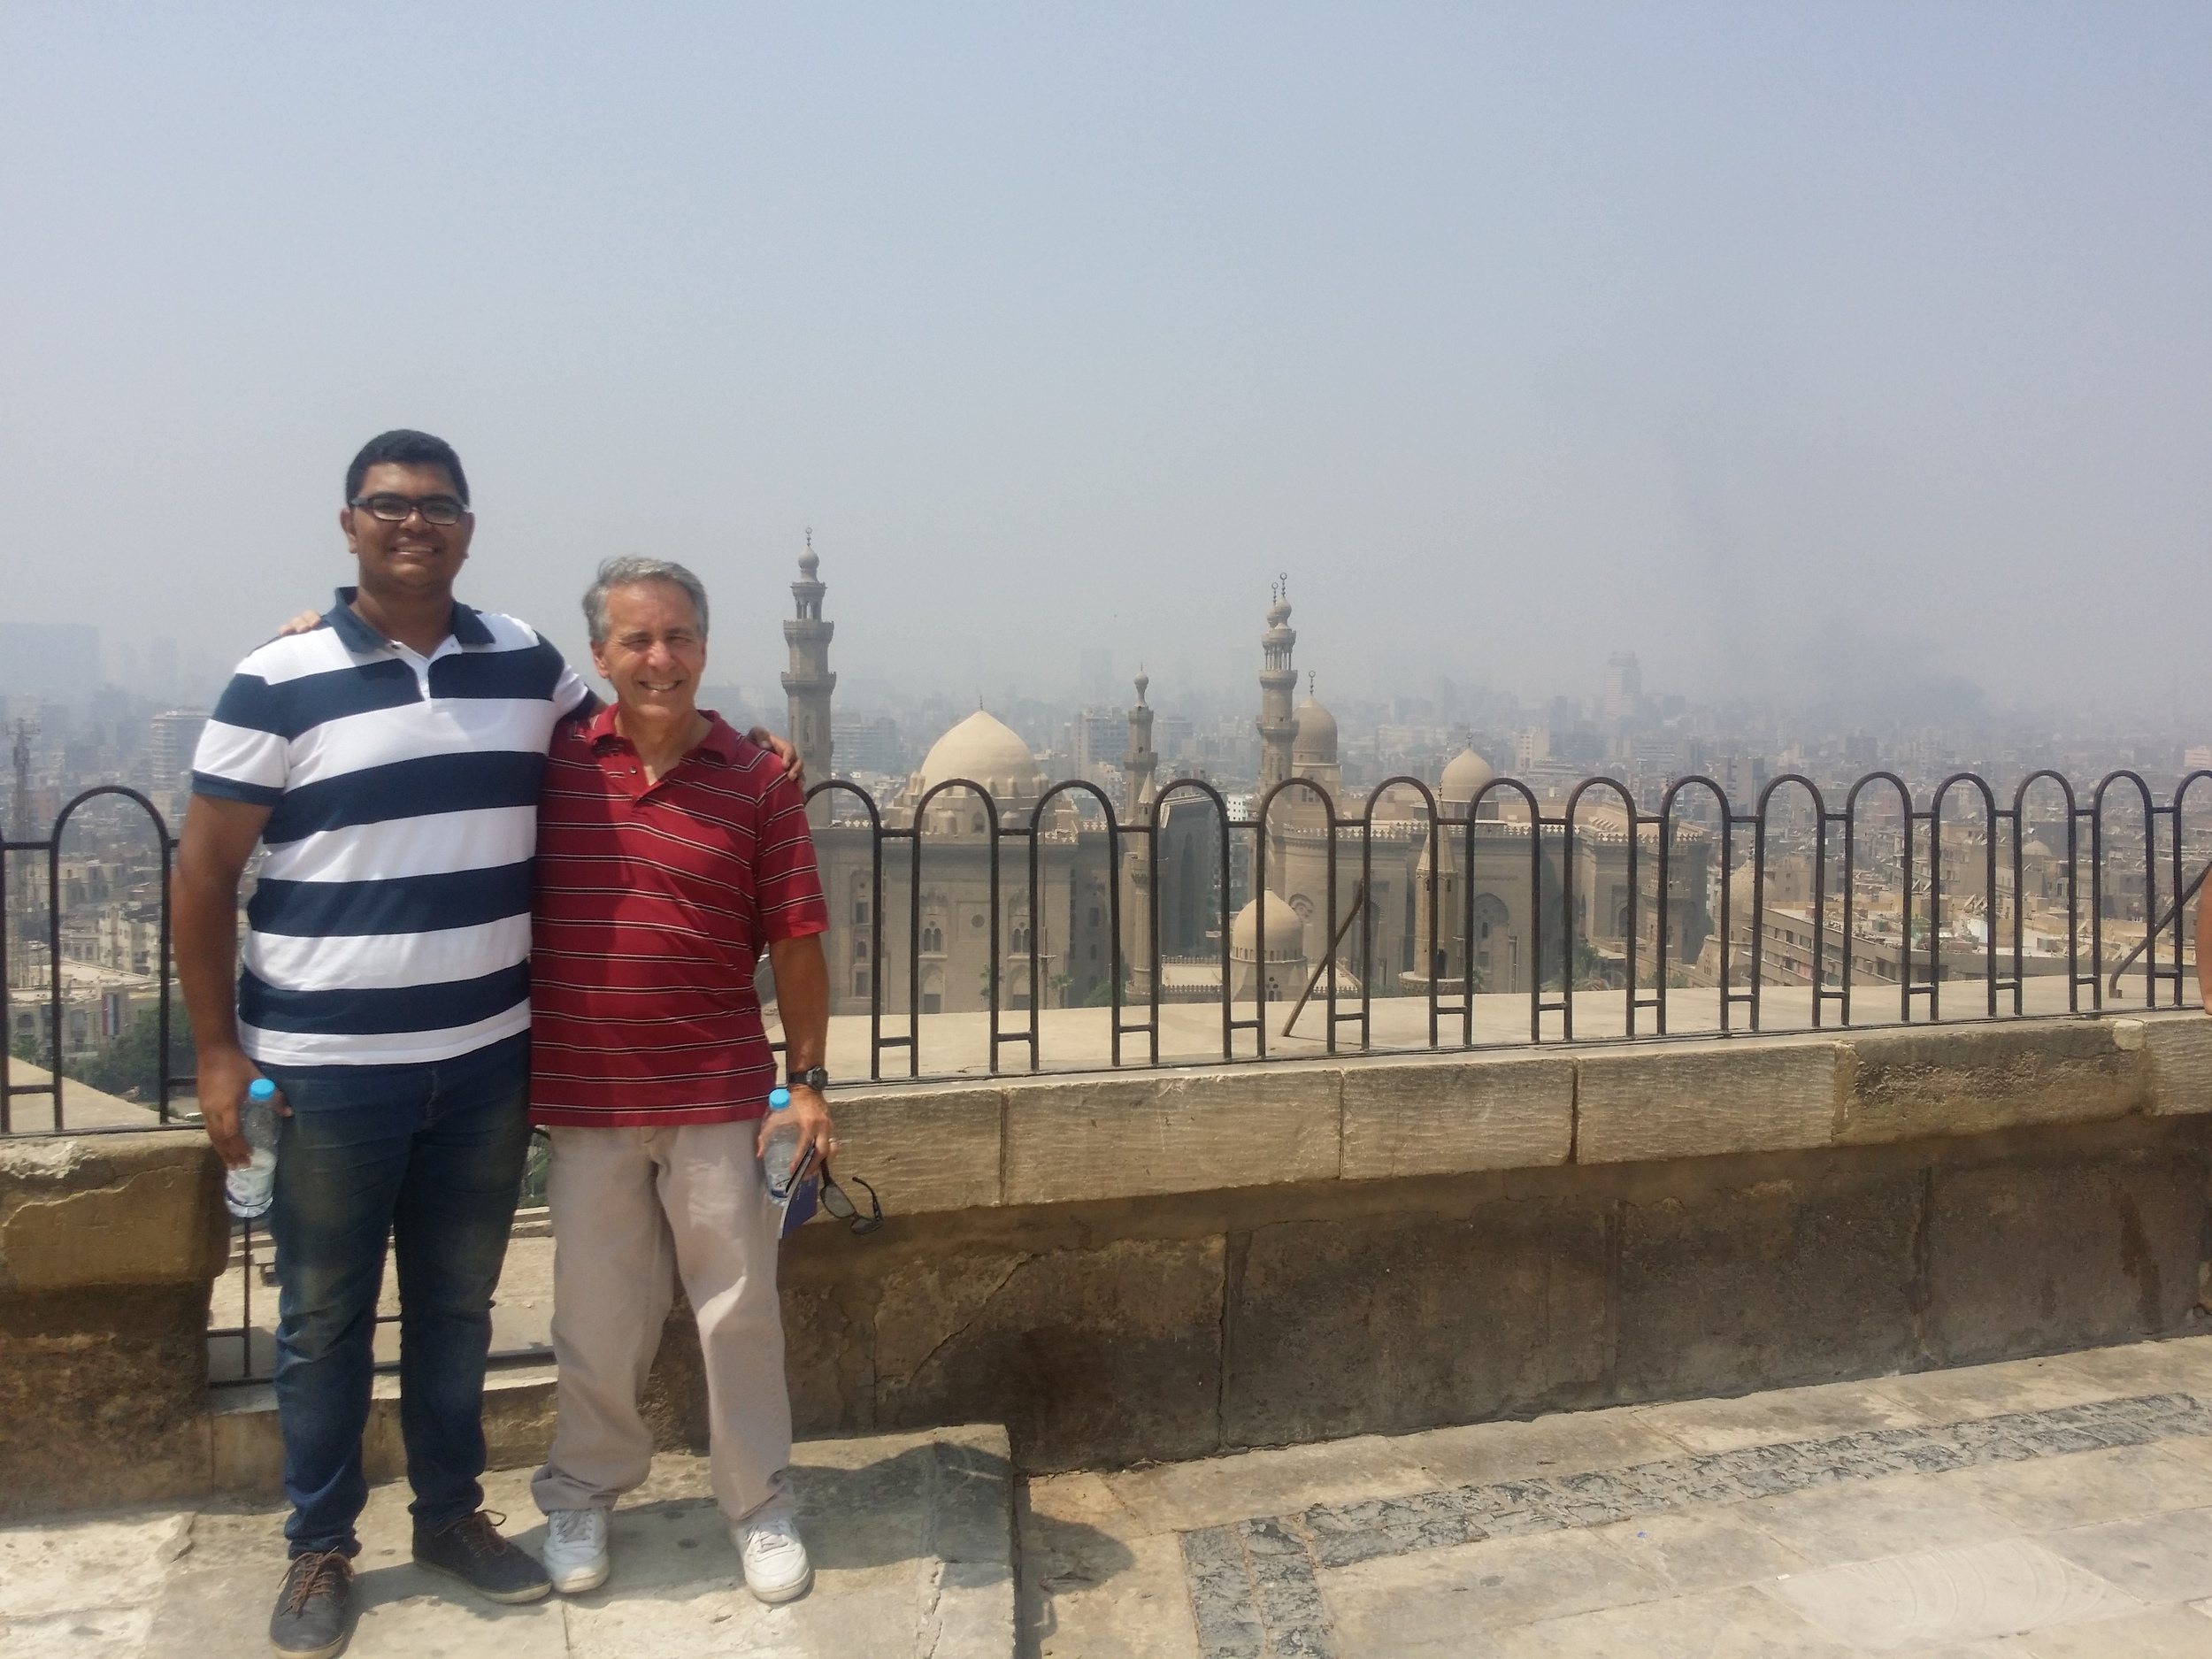 On the day of my departure, one of the young Christian leaders, who I had served beside during my time there, led us to the local citadel for a quick tour.